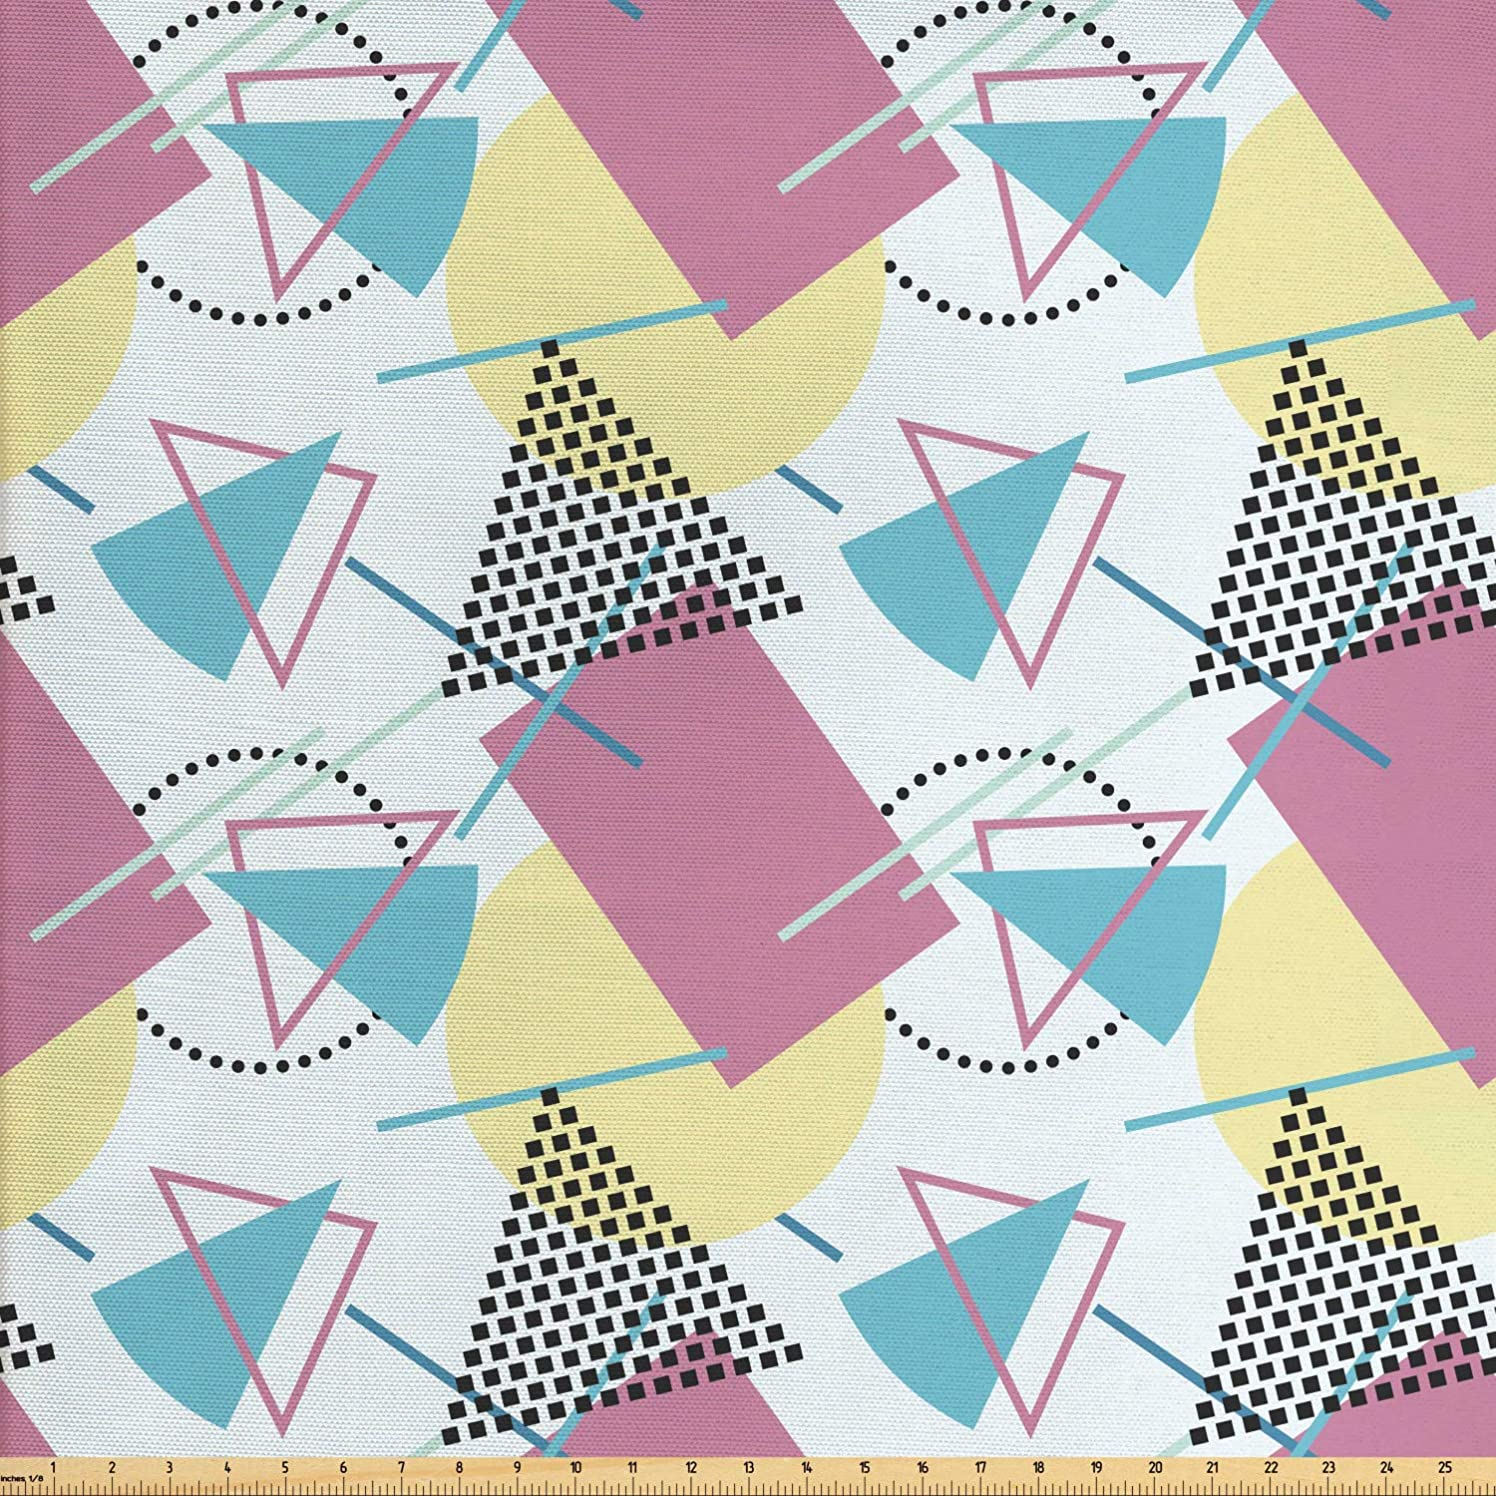 Ambesonne Retro Fabric by The Yard, Pastel Colored Funky Geometrical Shapes from Eighties and Nineties Memphis Style, Decorative Fabric for Upholstery and Home Accents, 1 Yard, Multicolor